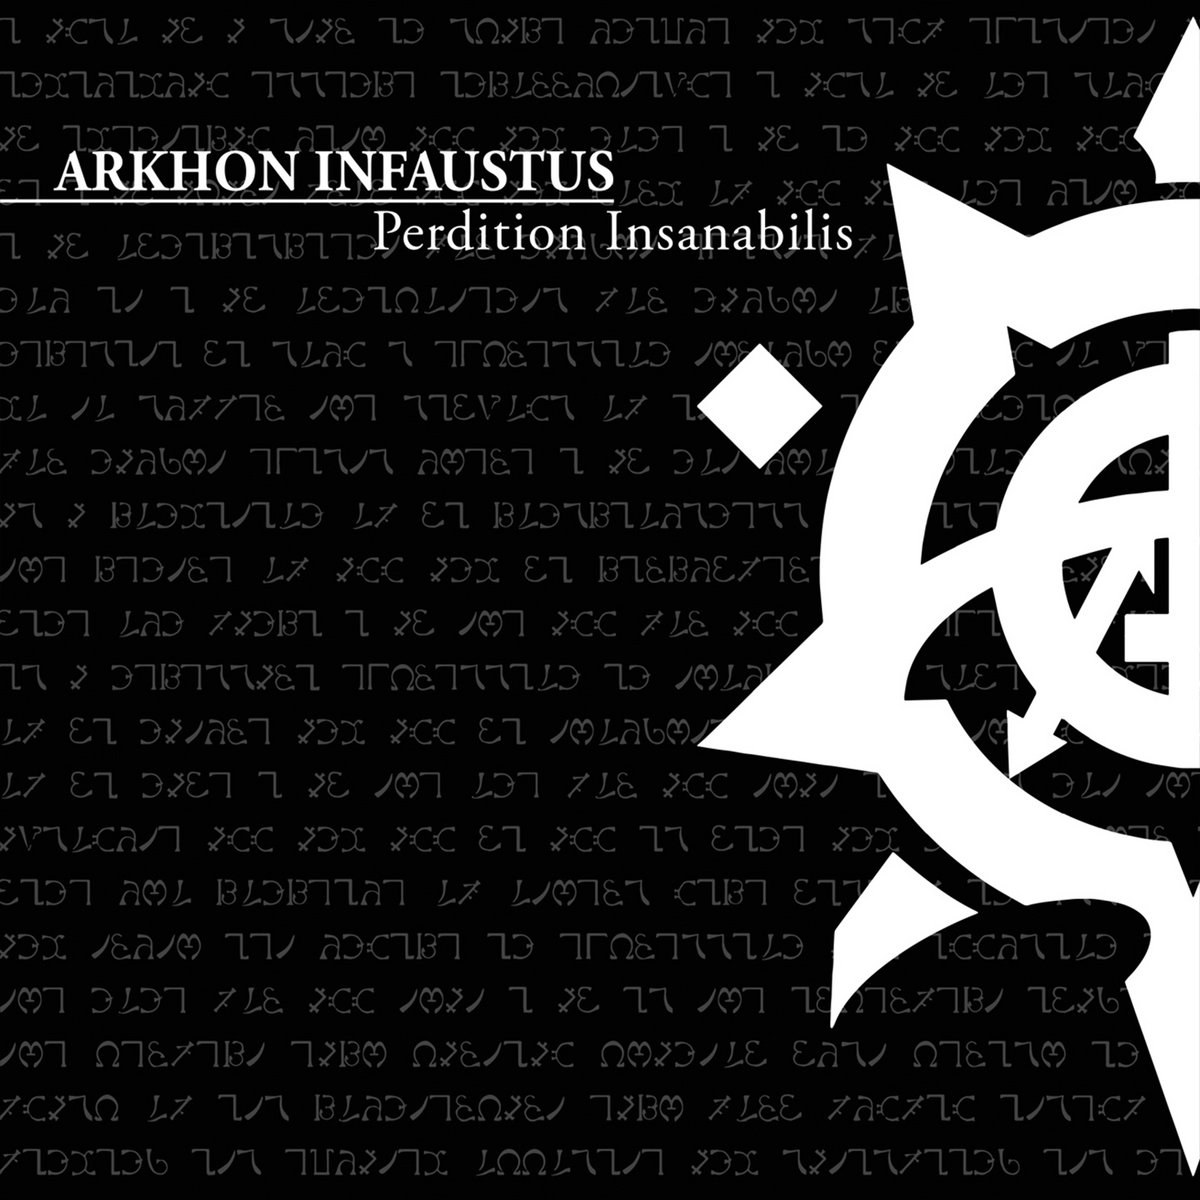 Review for Arkhon Infaustus - Perdition Insanabilis